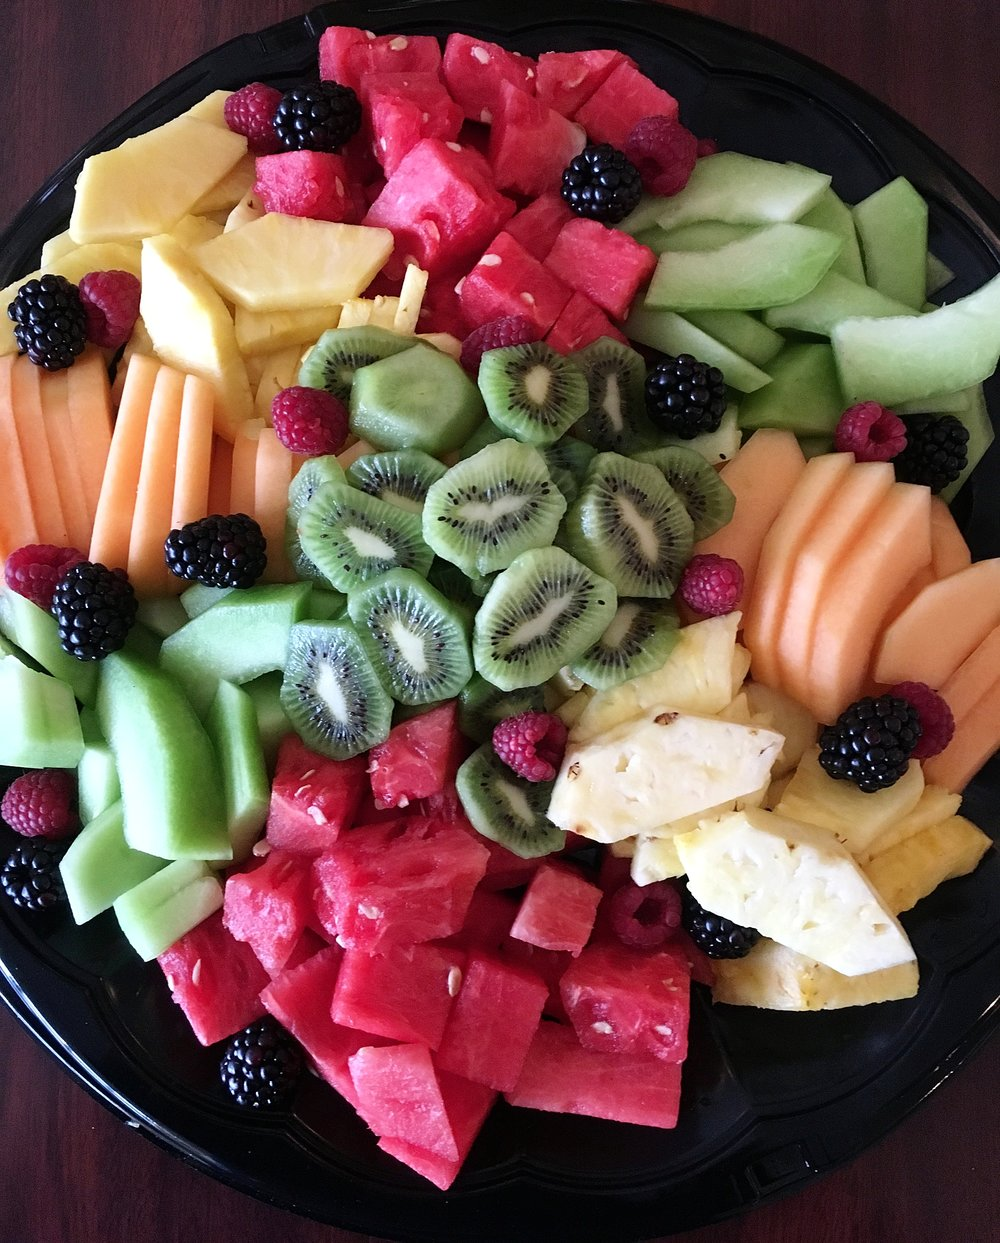 Catering fruit tray 3.JPG